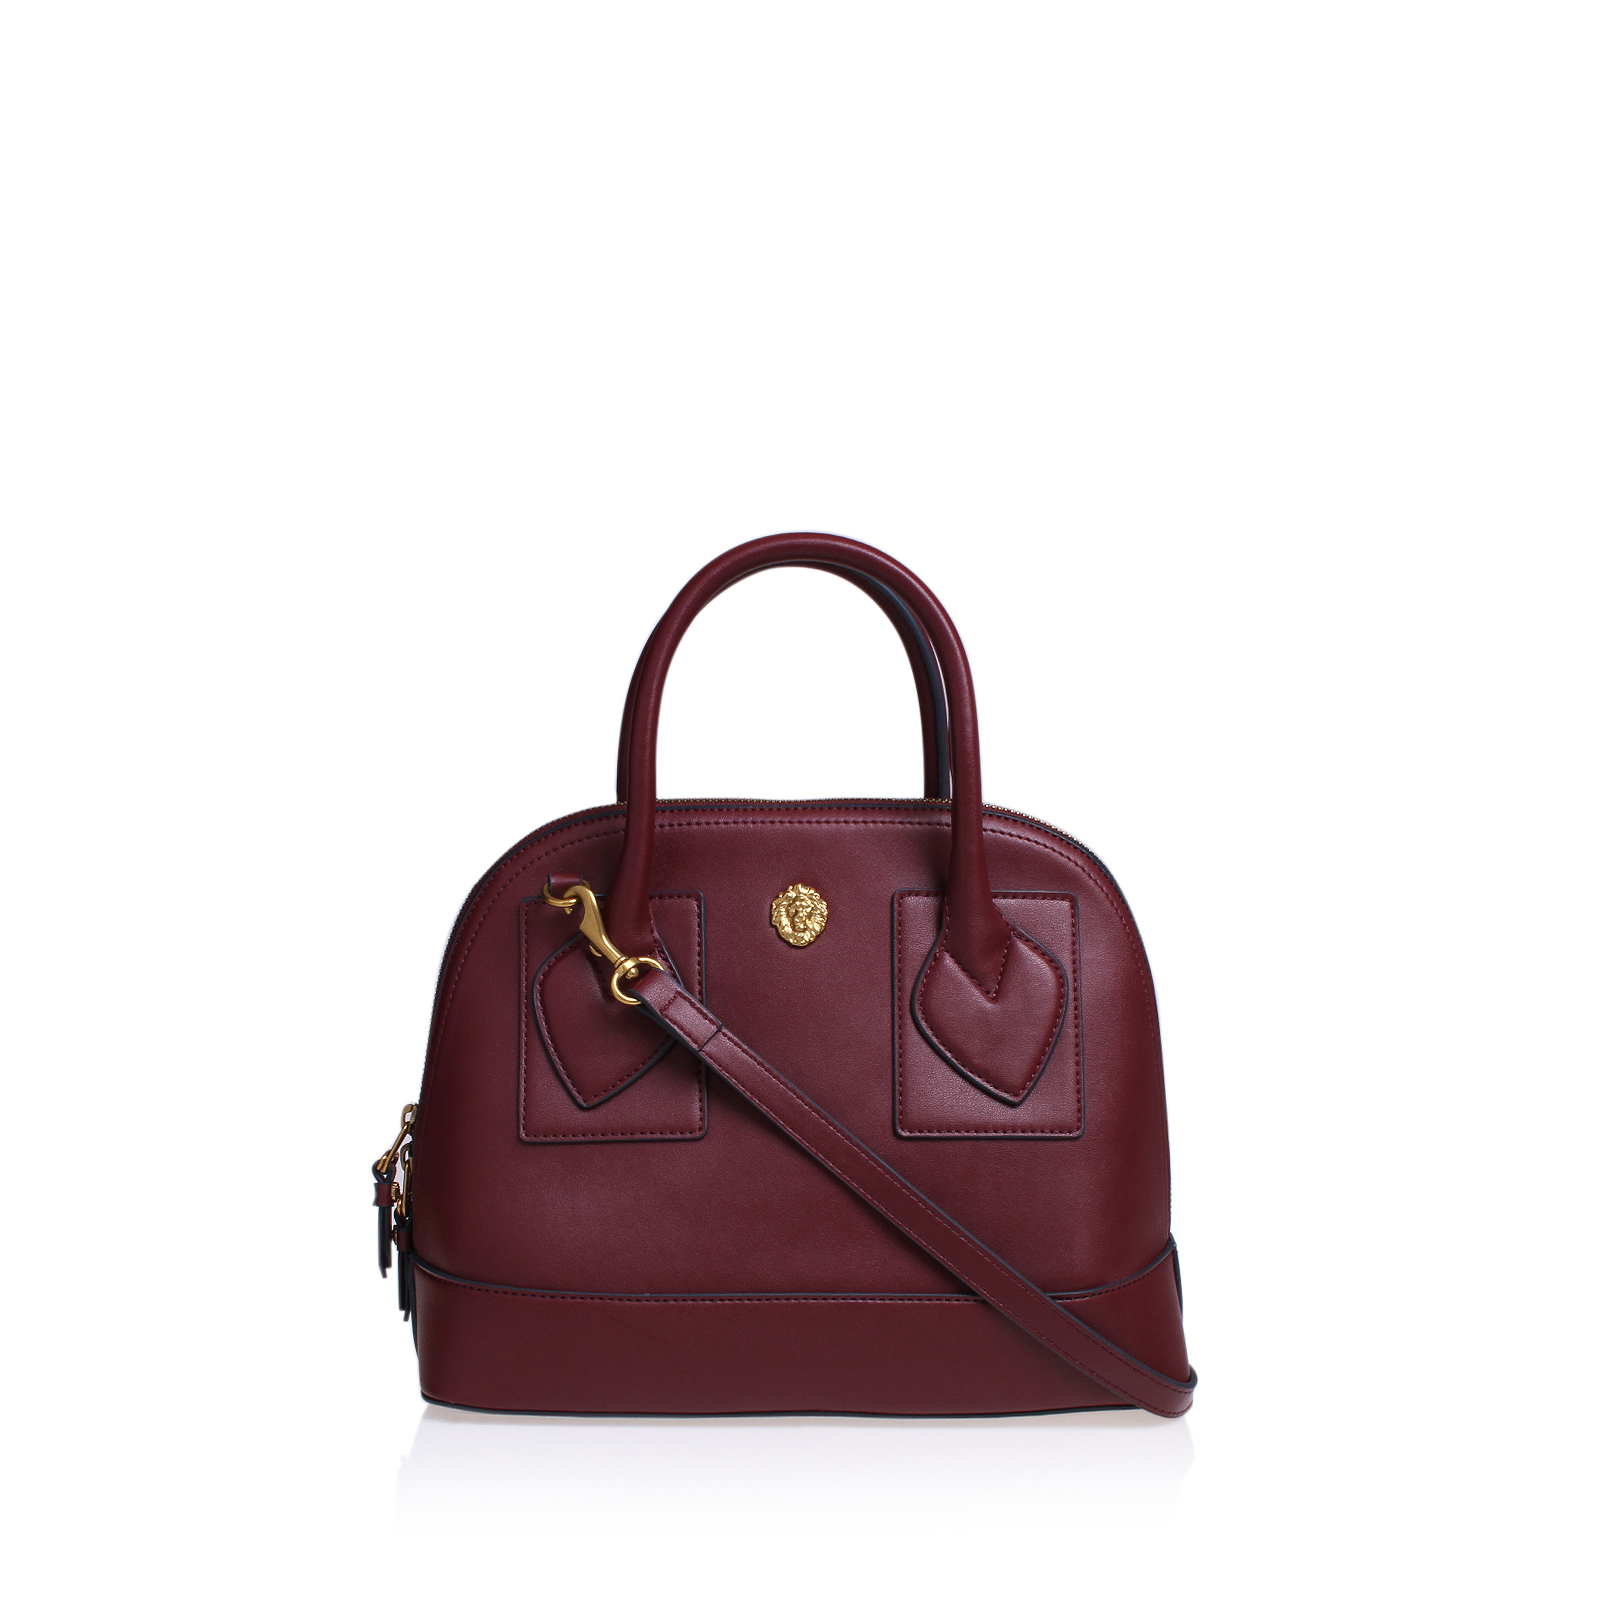 BILLE DOME SATCHEL SM